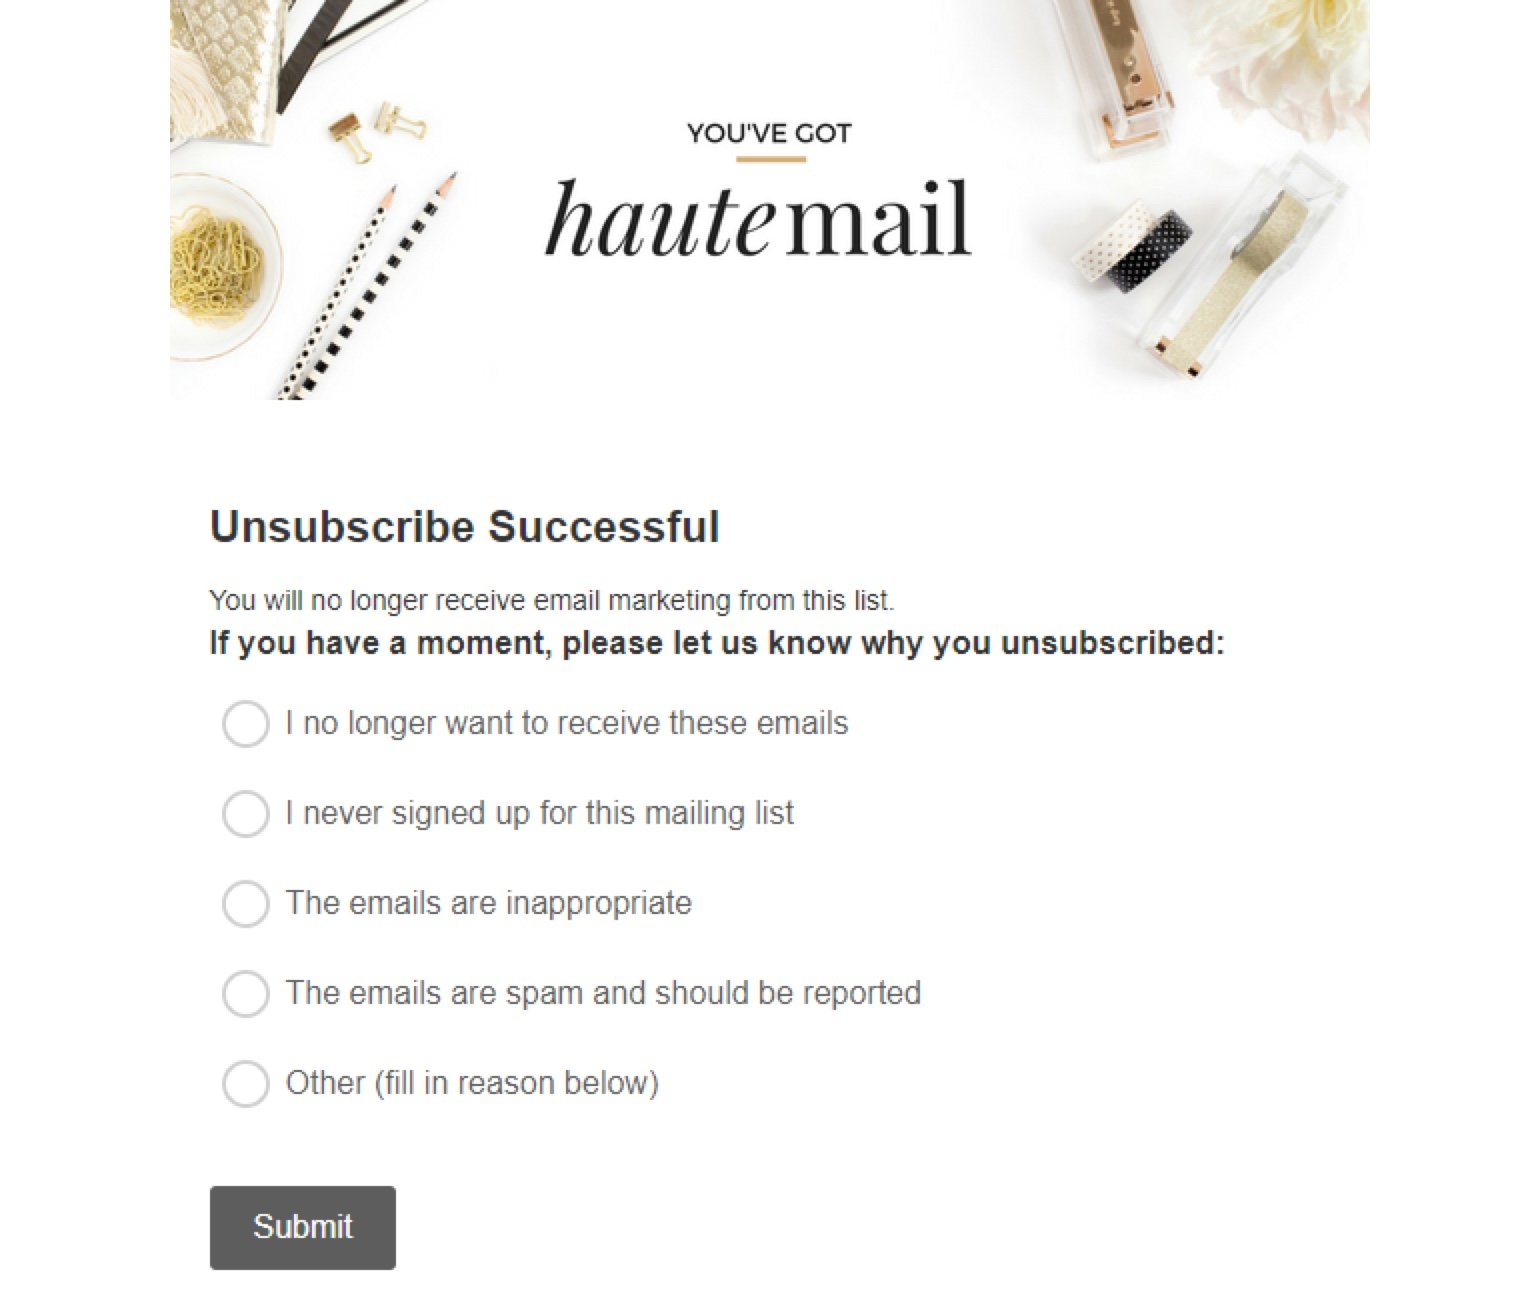 Haute mail unsubscribe page example